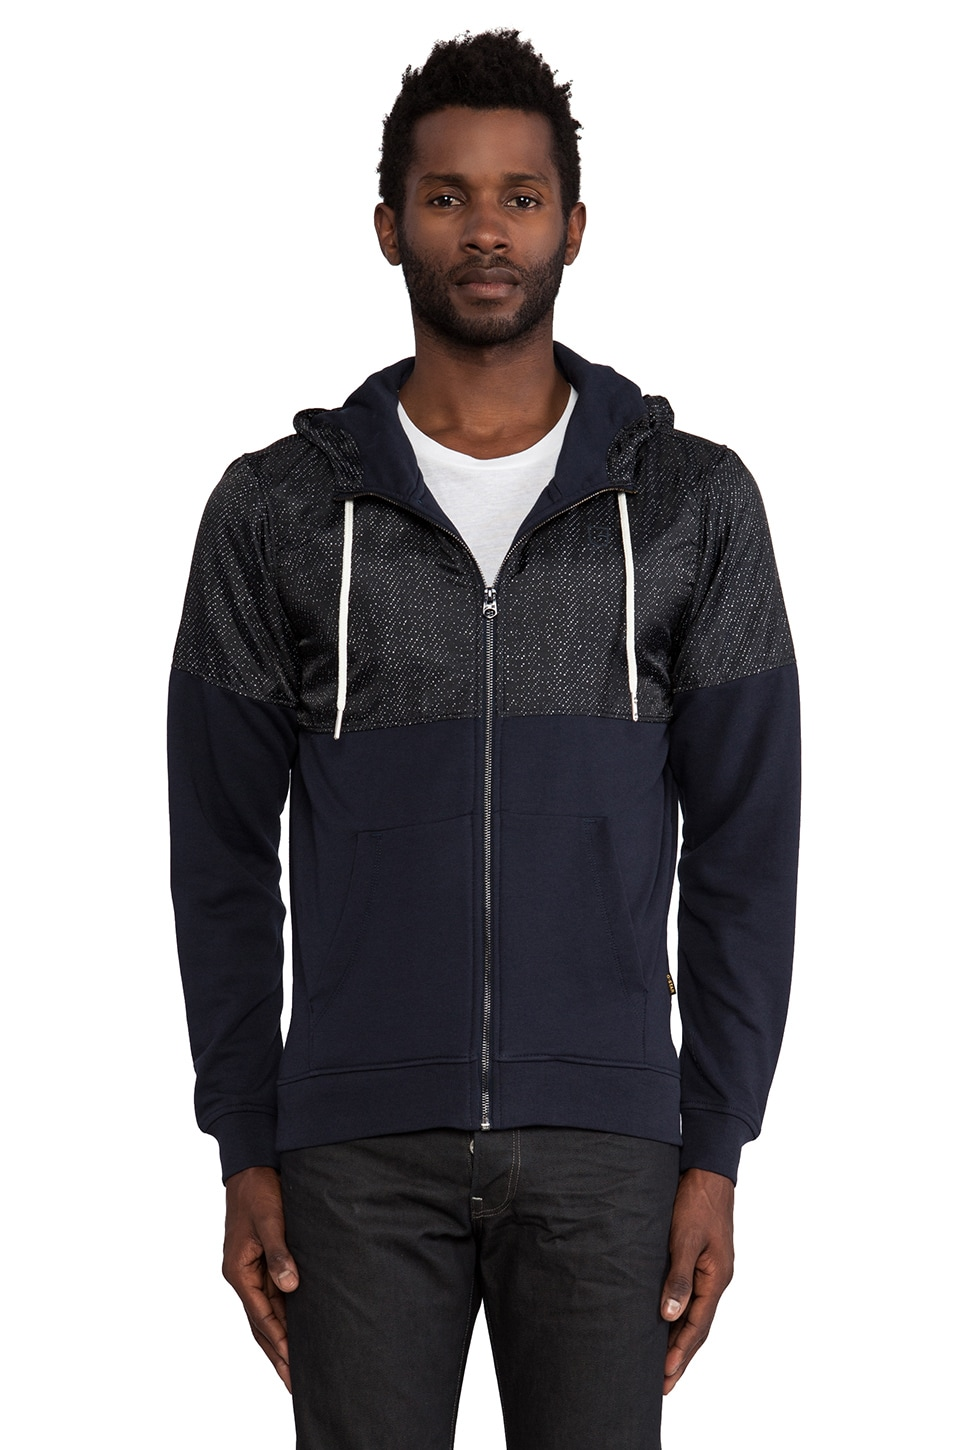 G-Star Jordan Hooded Vest Vancouver Sweatshirt in Raw